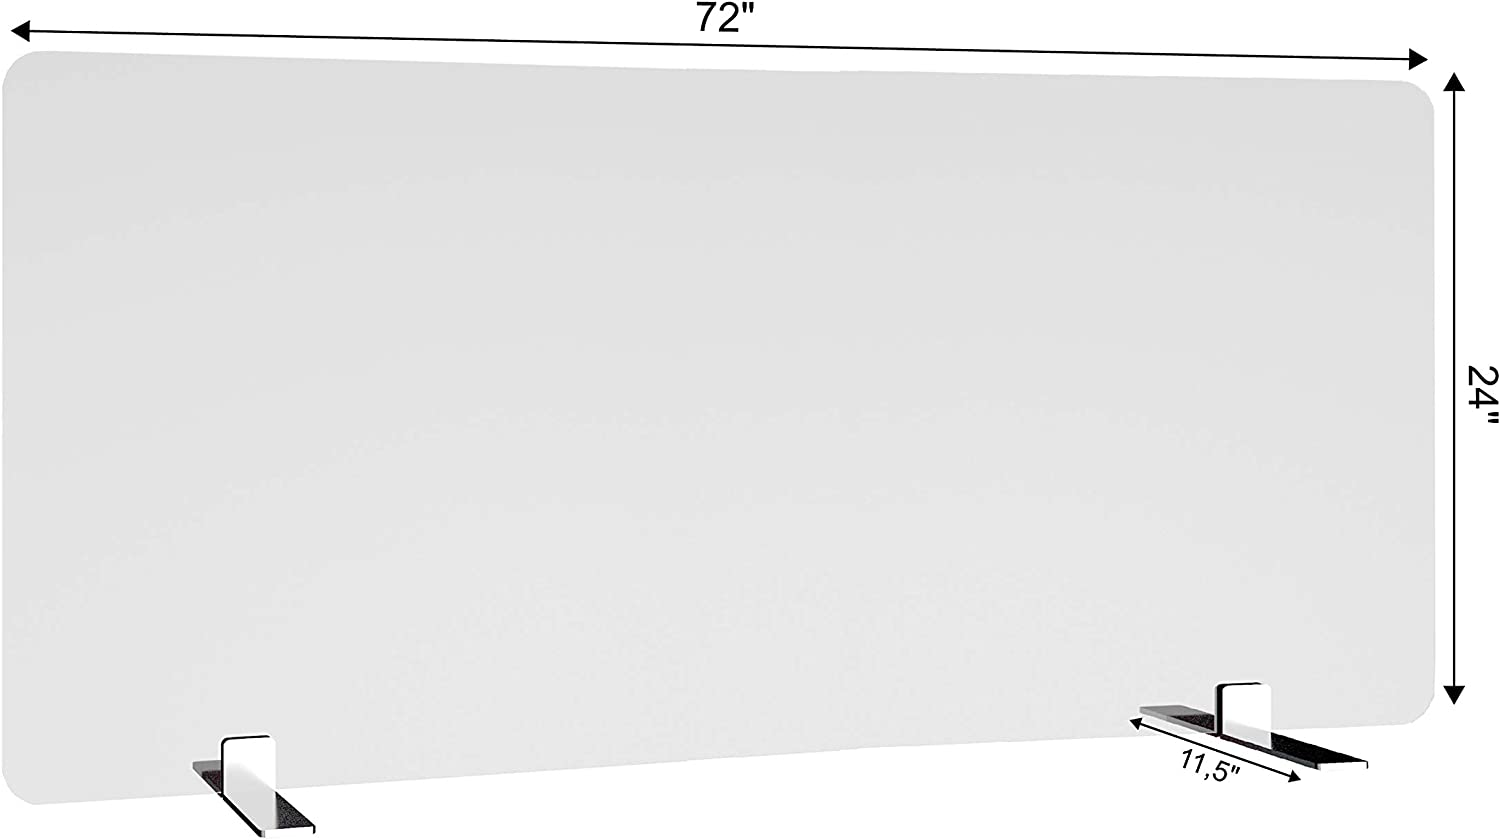 """Free-Standing Acrylic Protective Guard for Countertops w/Medium 11.5 inches Flat Legs, Office Desk Partition Panels, Protective Barriers for Workspaces (72"""" x 24"""")"""